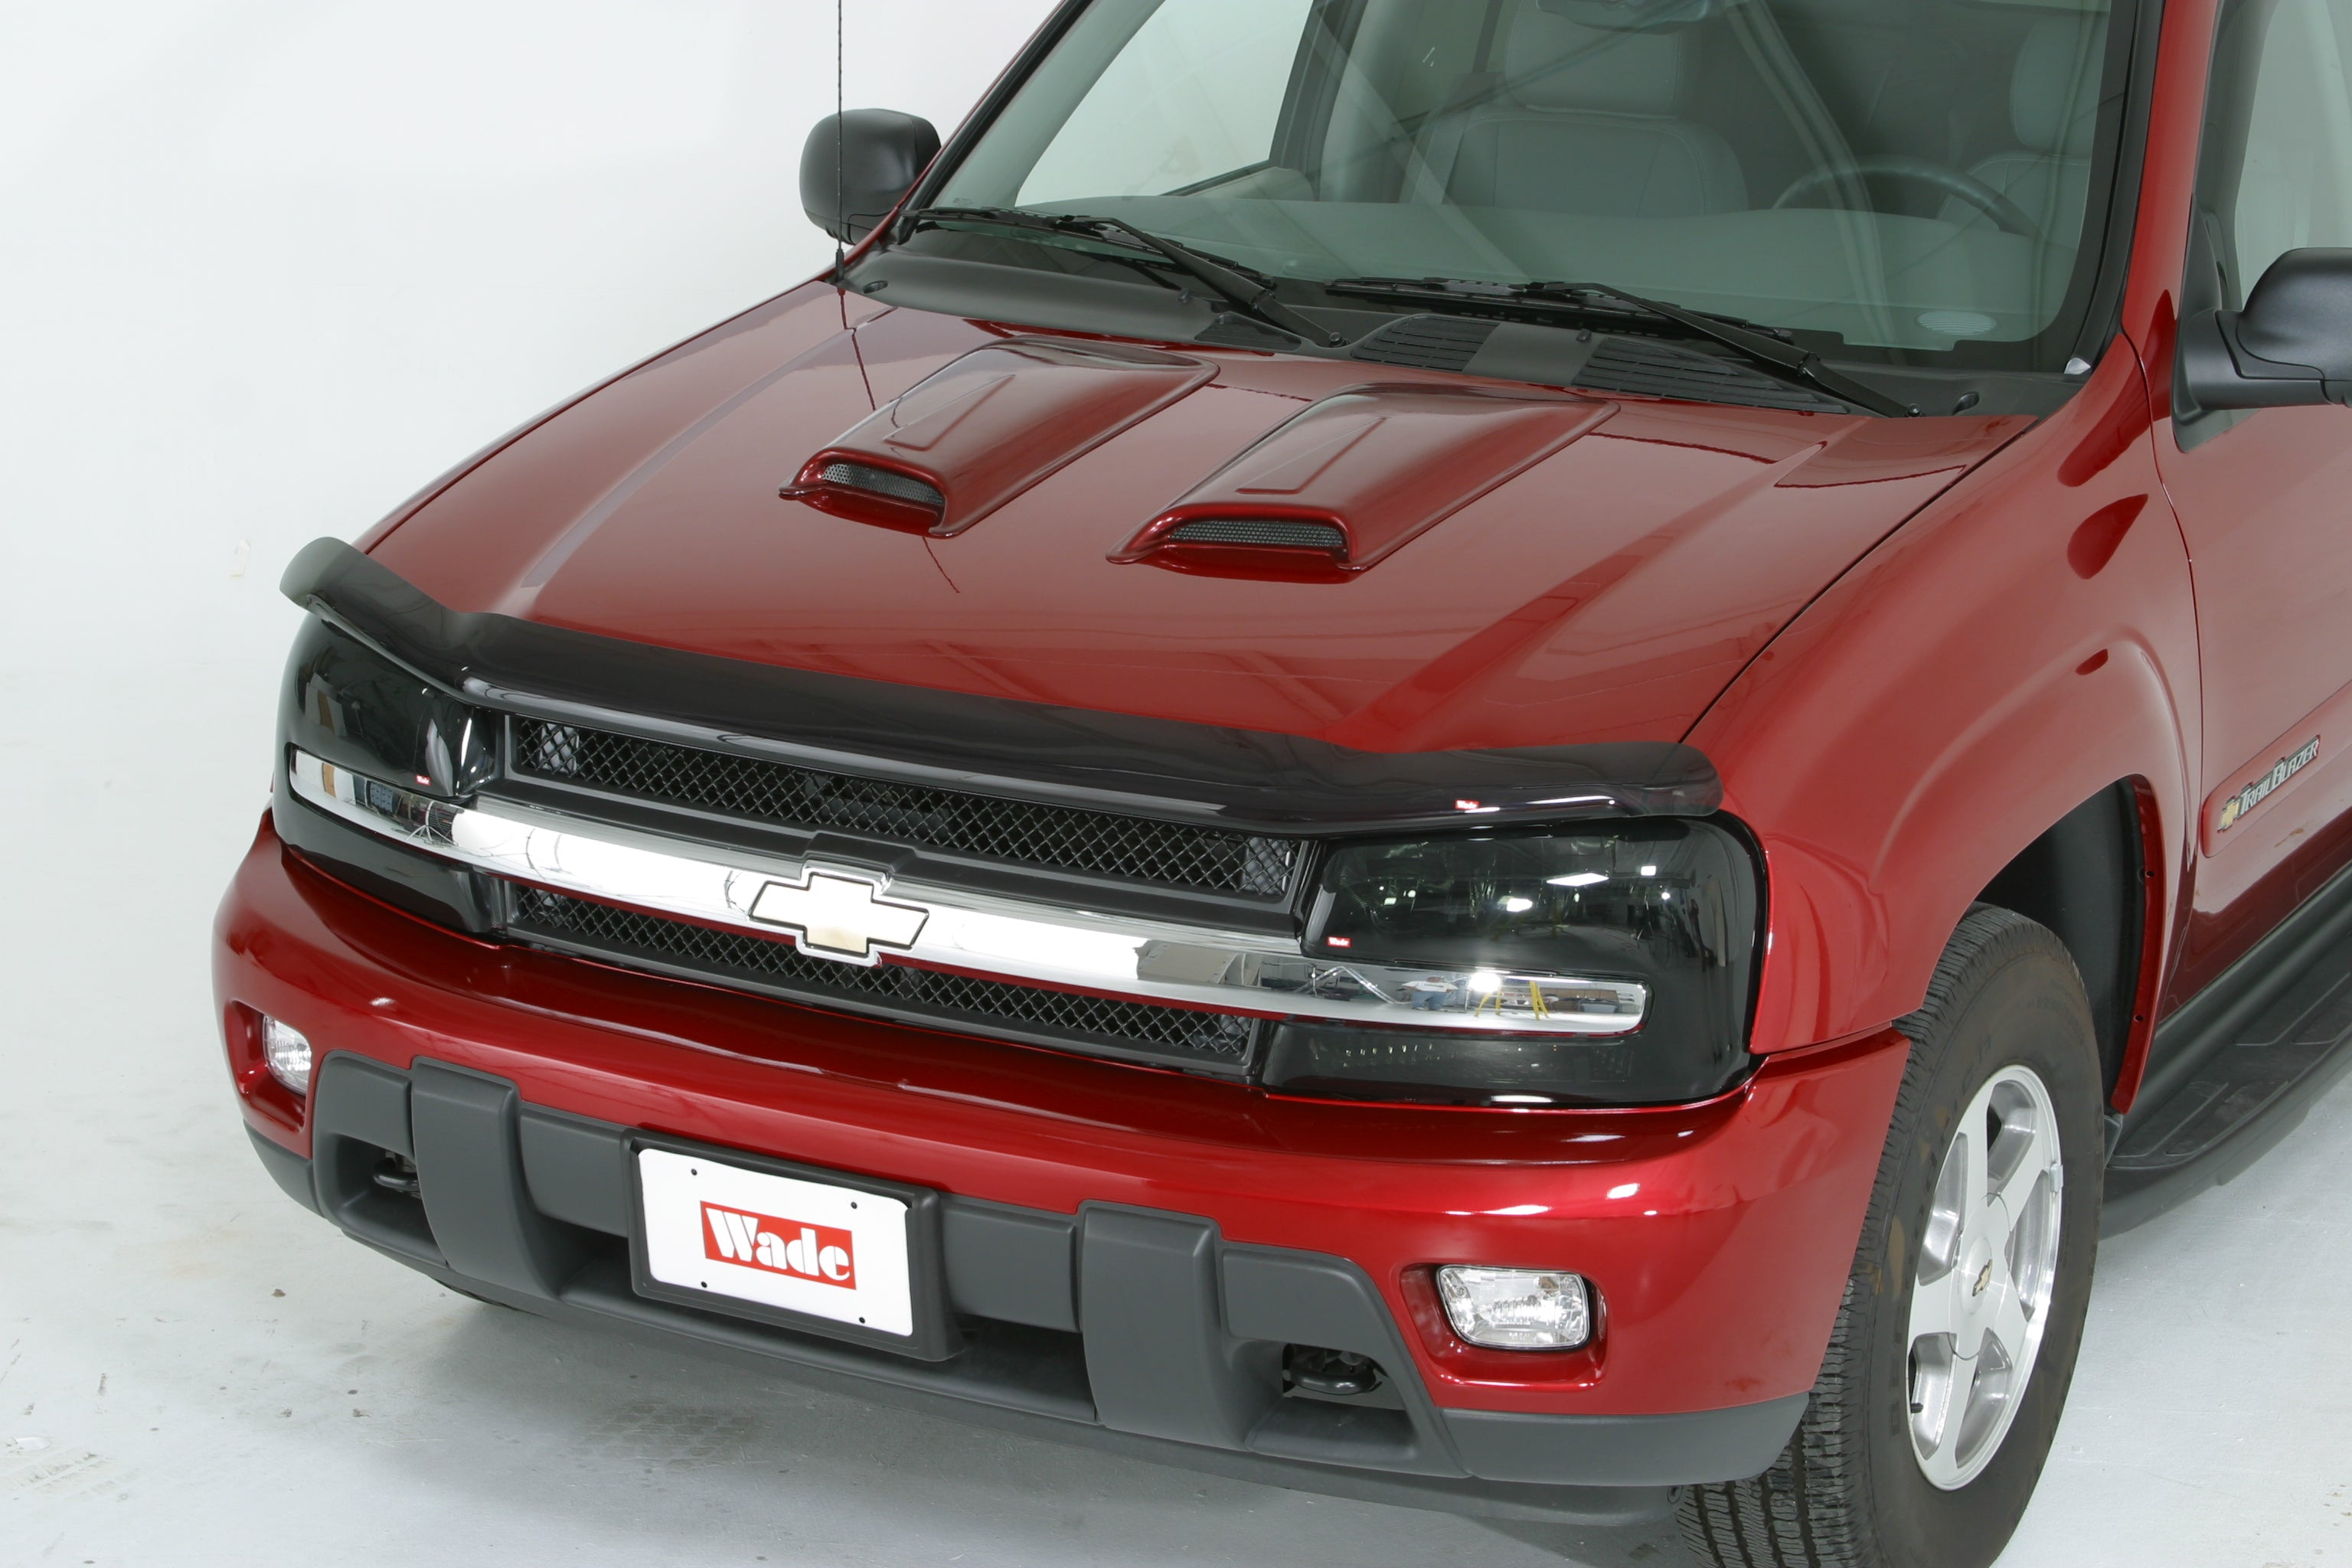 1993 Nissan Pickup 4WD (recessed light) Head Light Covers